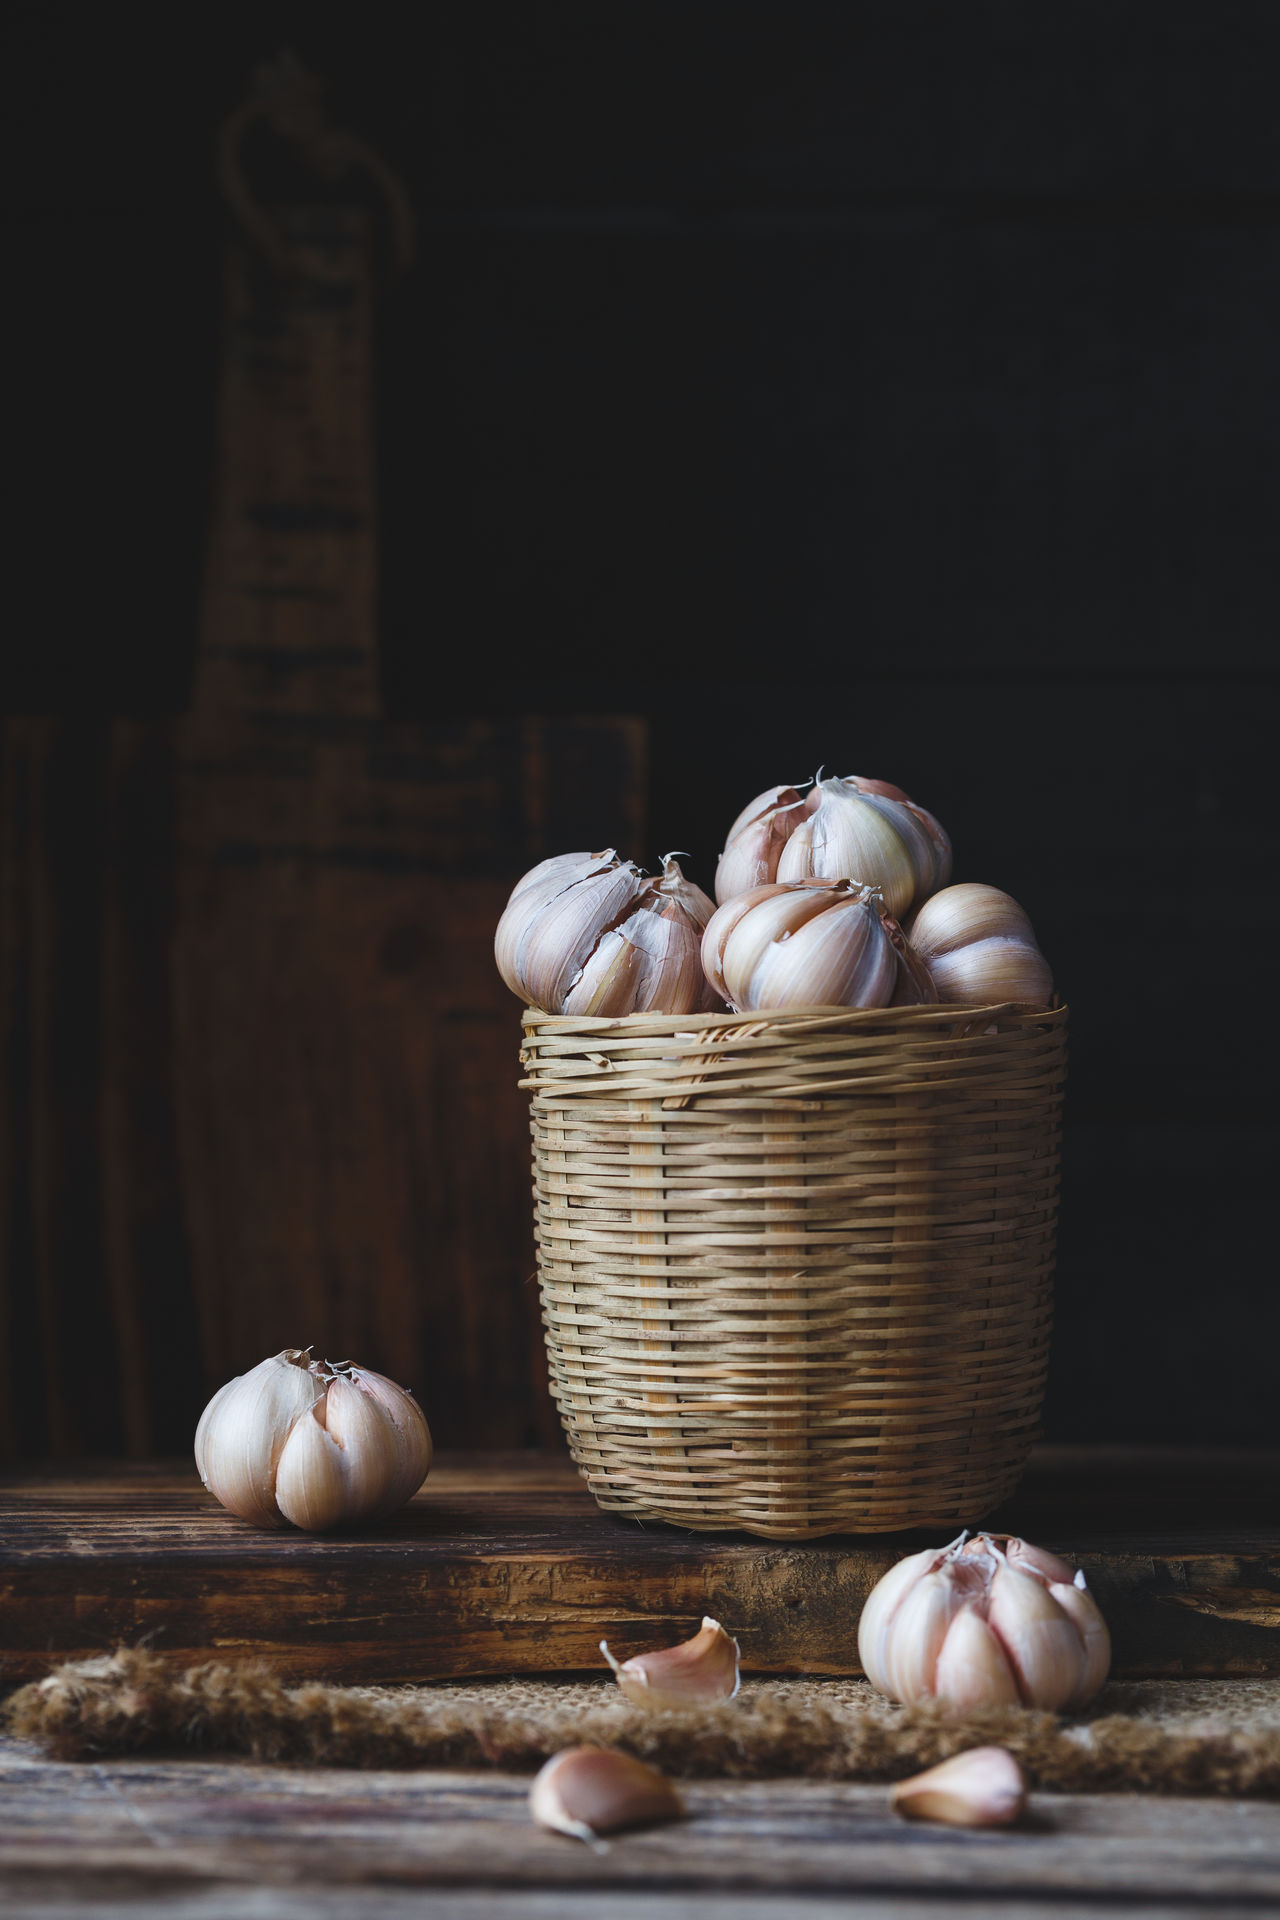 Garlic on the old wood Agriculture ASIA Bamboo Basket Burlap Dark Background Drug Dry Garlic Farm Food Garlic Healthy Food Isolated Medicine Natural Nutrition Old Wood Raw Rustic Spice Tasty Tropical Vietnam Whole